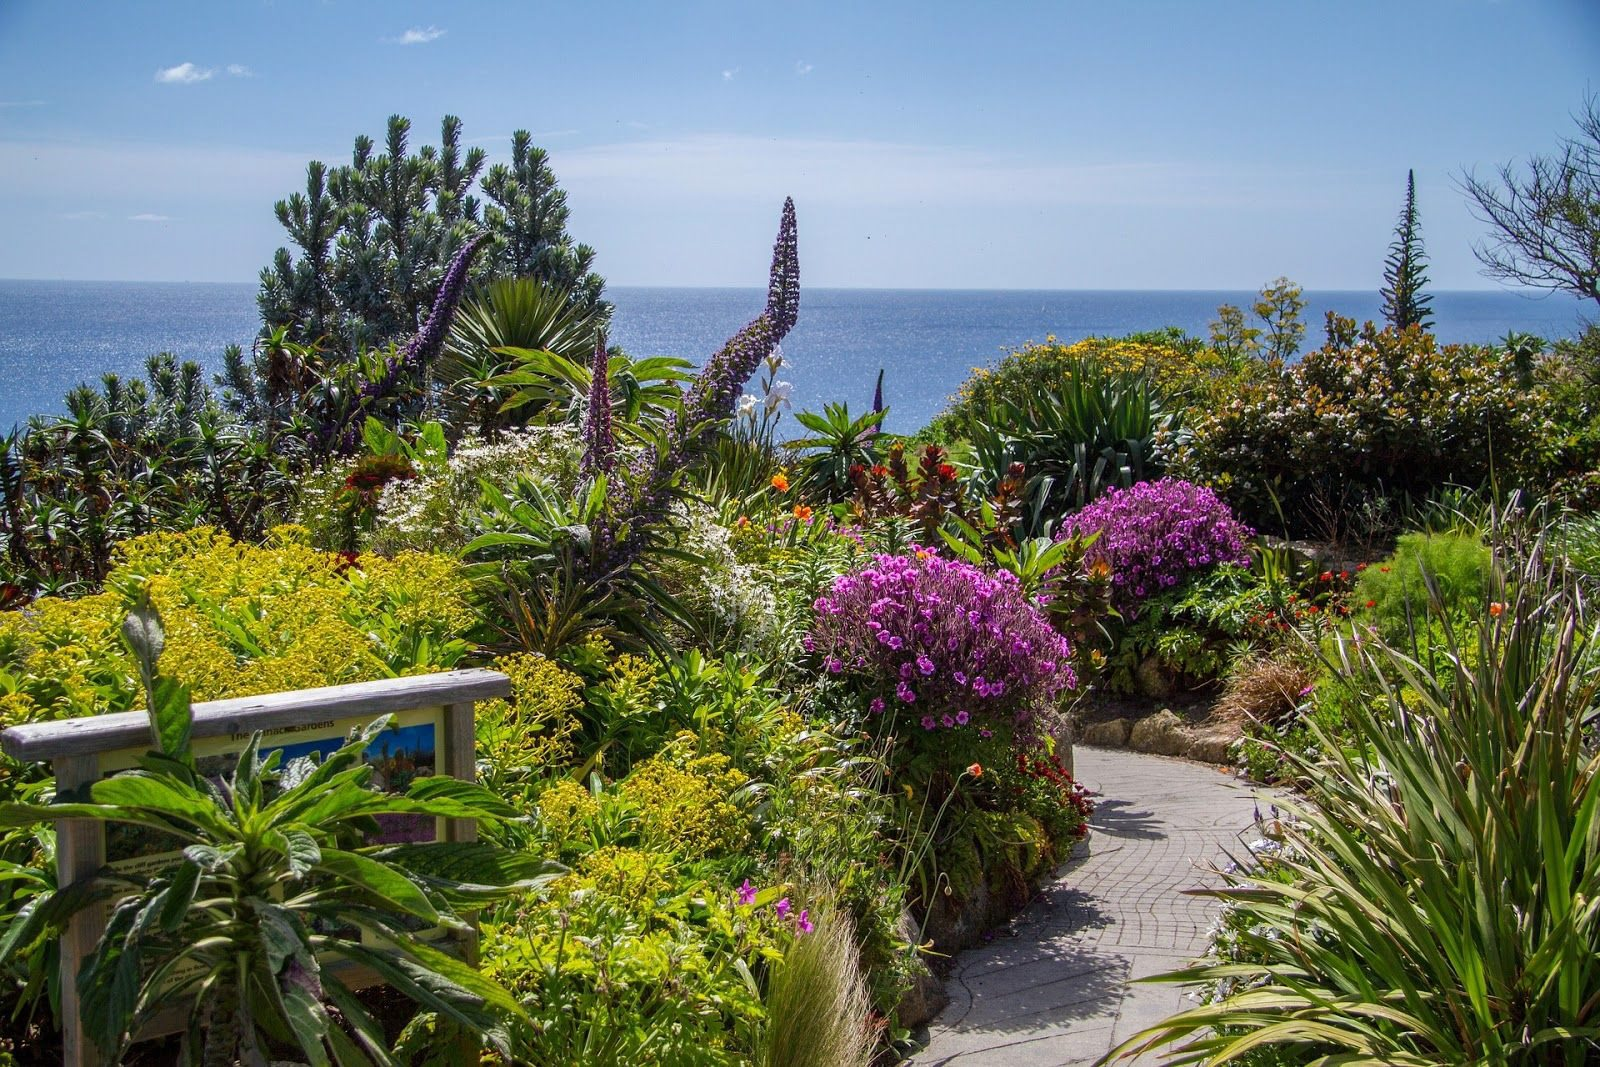 Seaview of a garden in St Ives covered with flowers